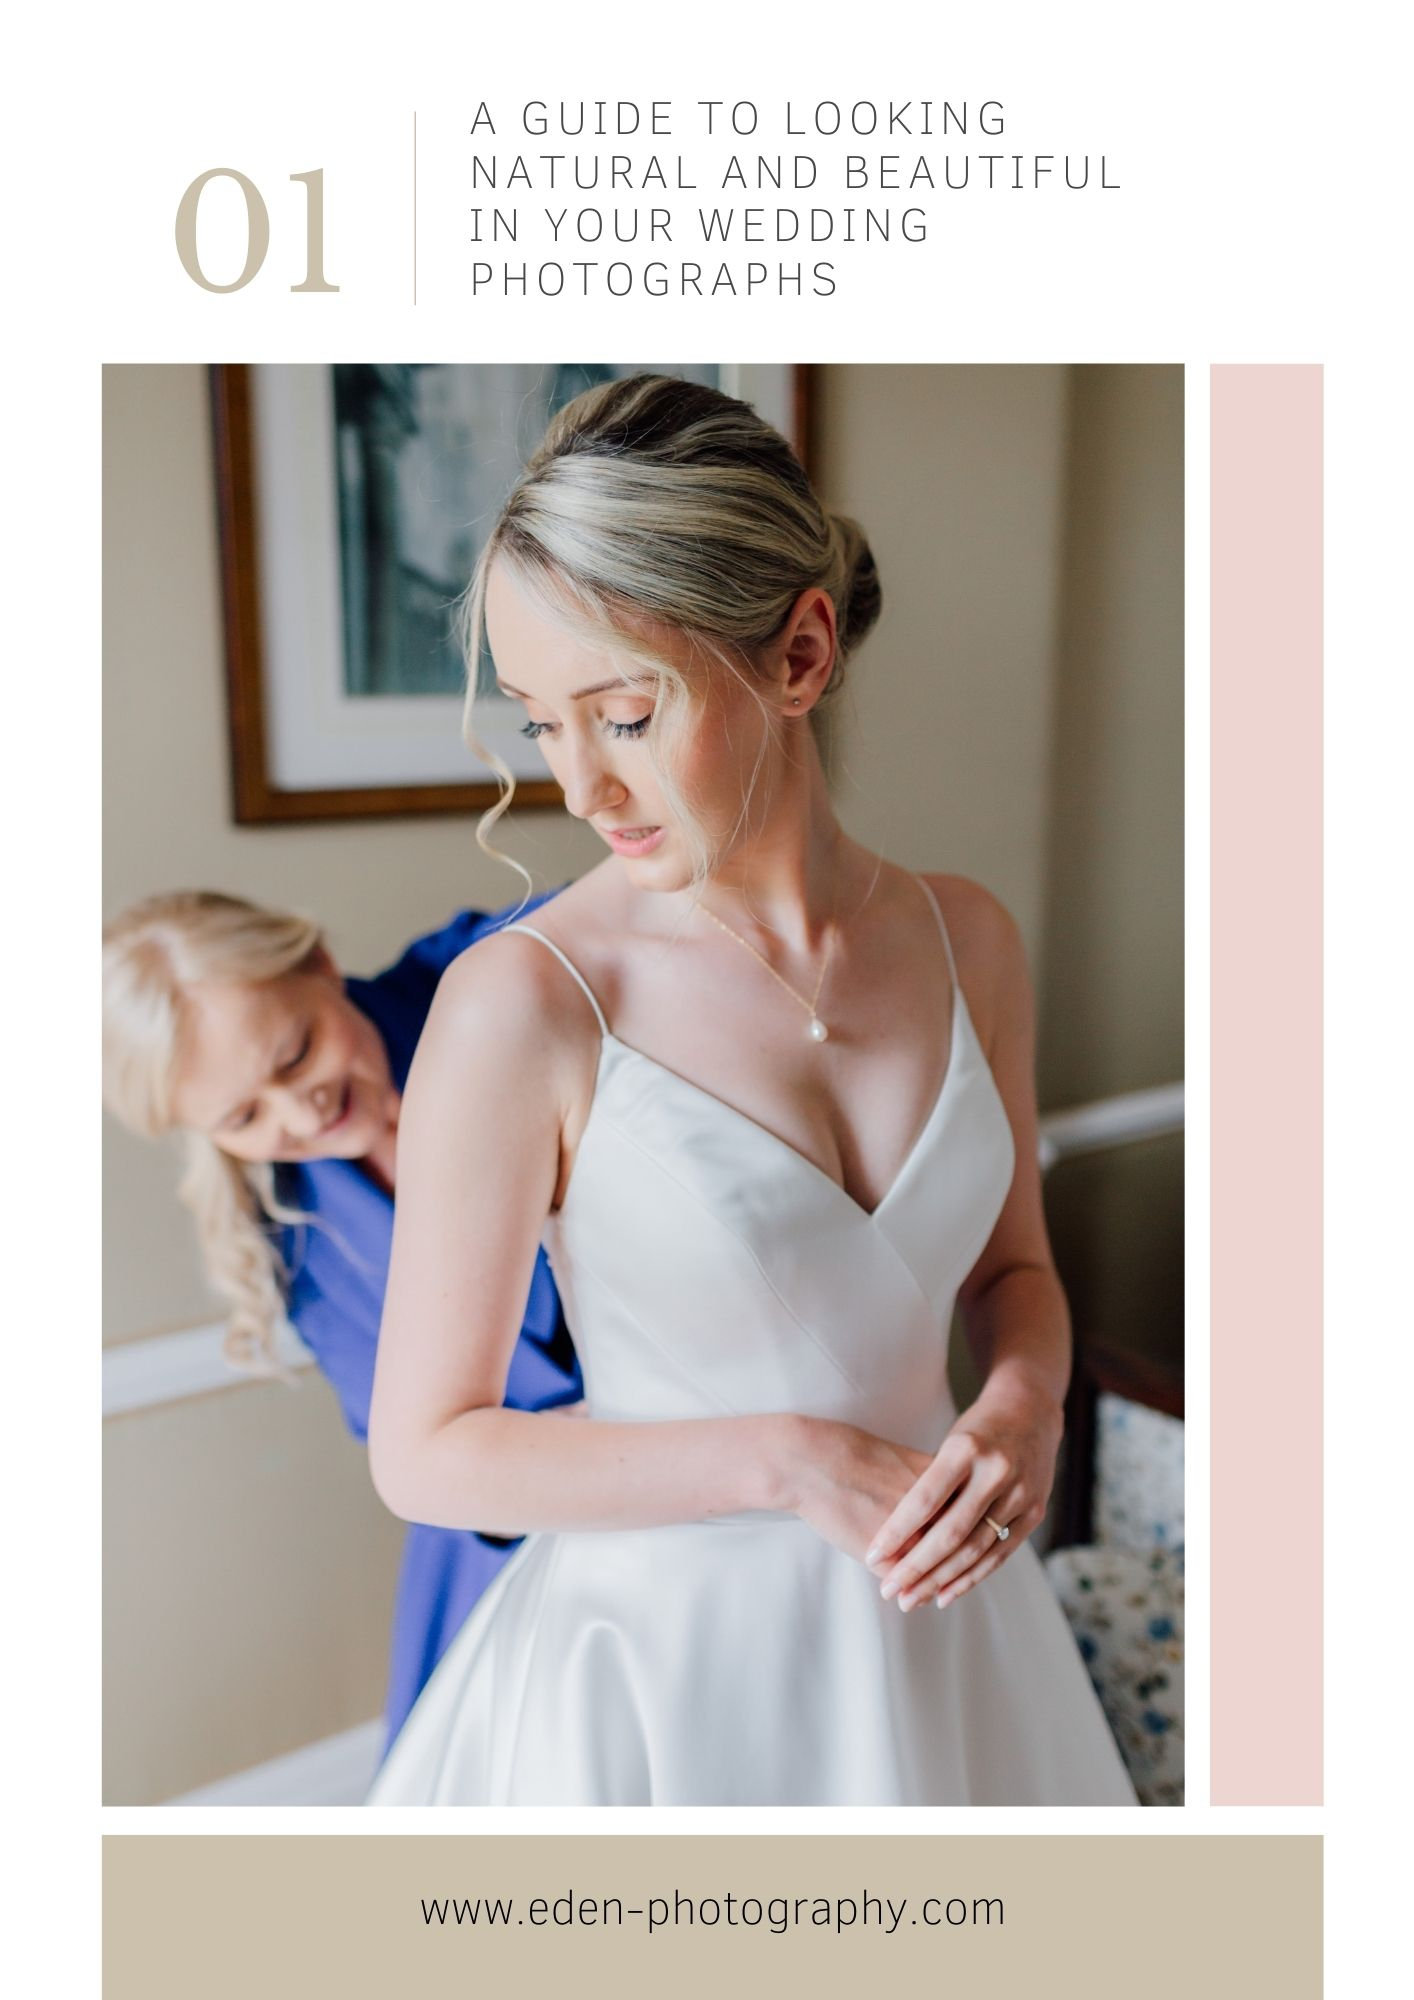 how-to-look-good in-your-wedding-photographs